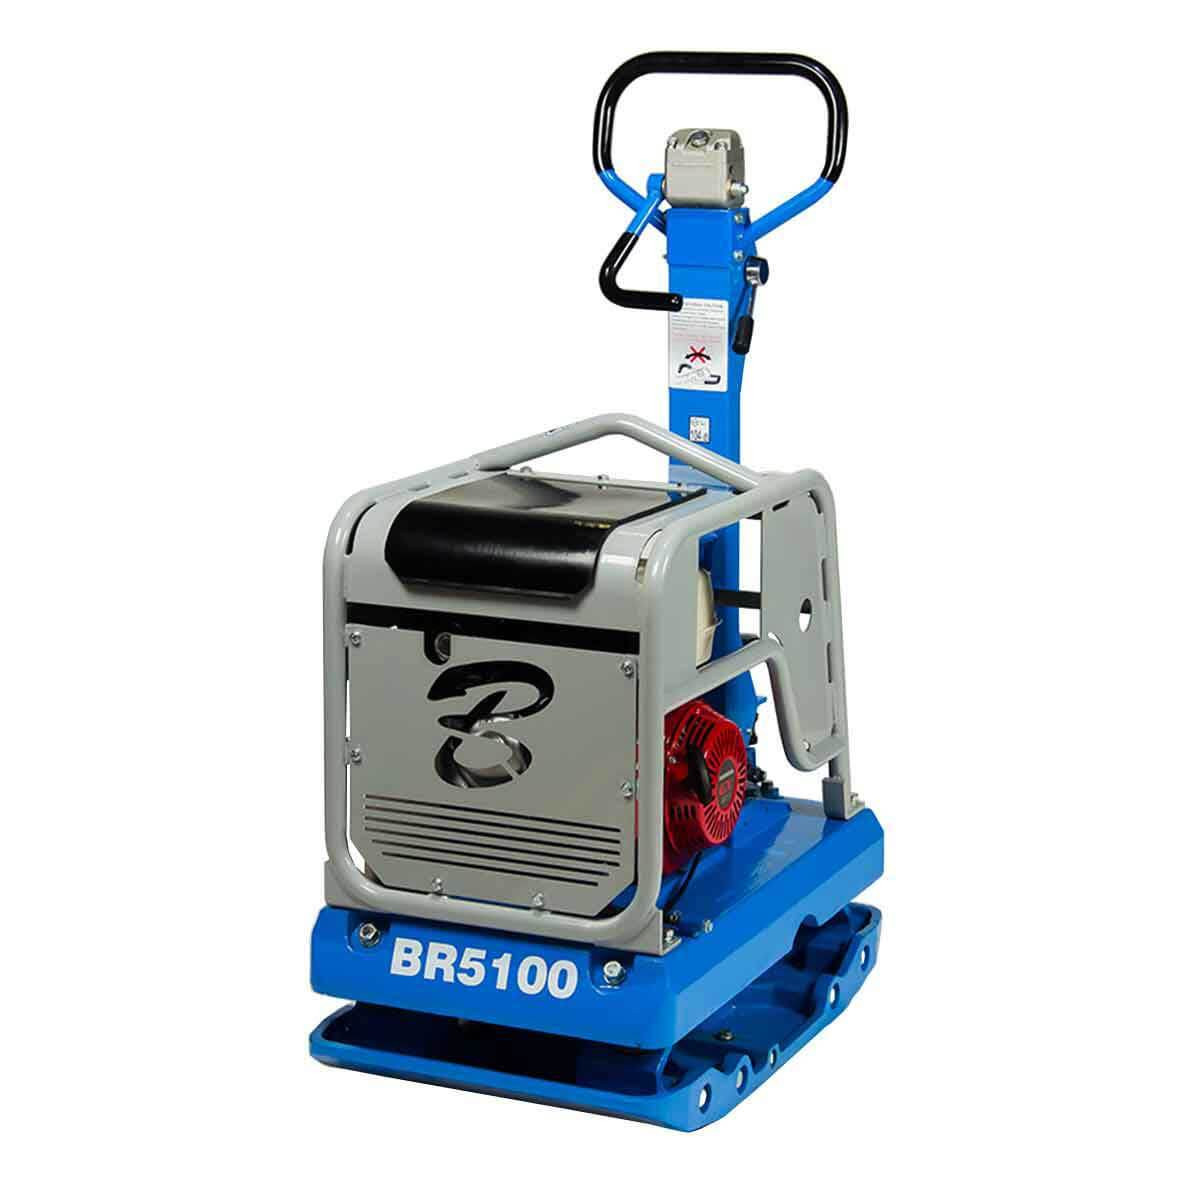 Bartell Reversible Plate compactor